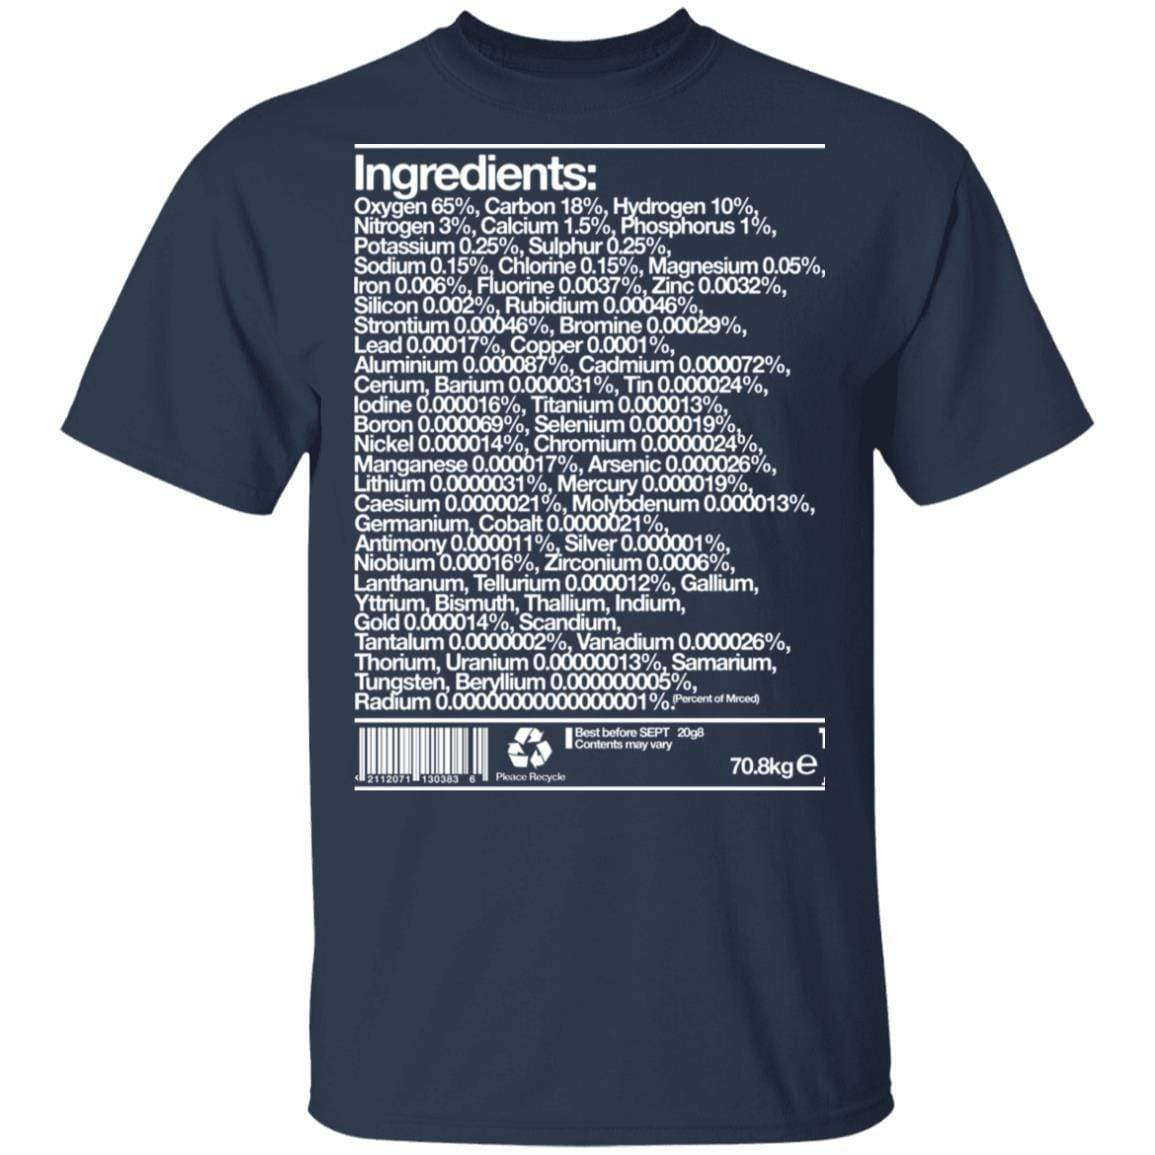 Human Ingredients Oxygen 65% Carbon 18% Hydrogen 10% T-Shirts, Hoodies 1049-9966-87589185-48248 - Tee Ript